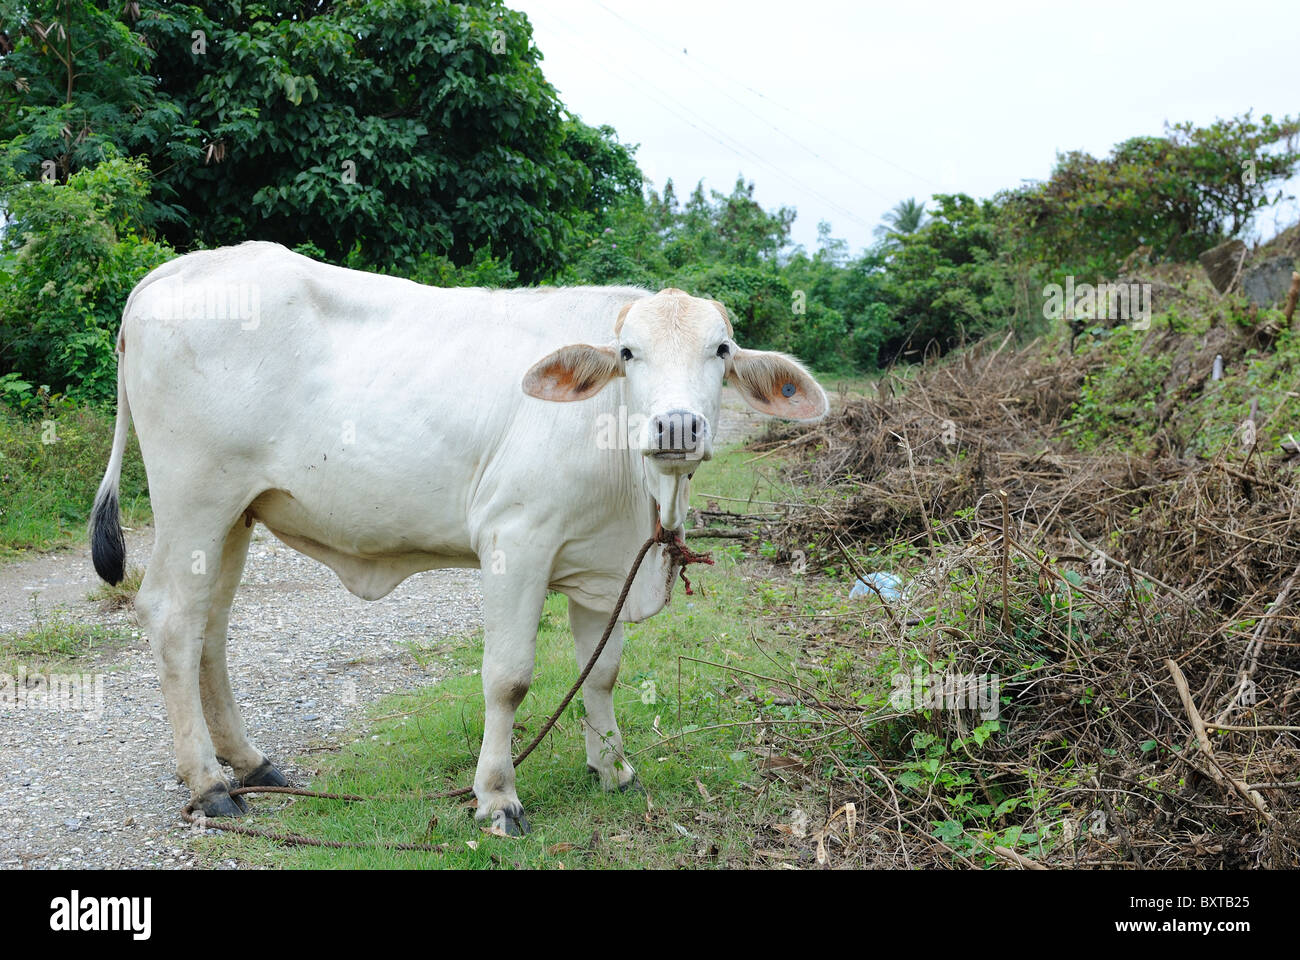 Cow along a road in the Caribbean. - Stock Image